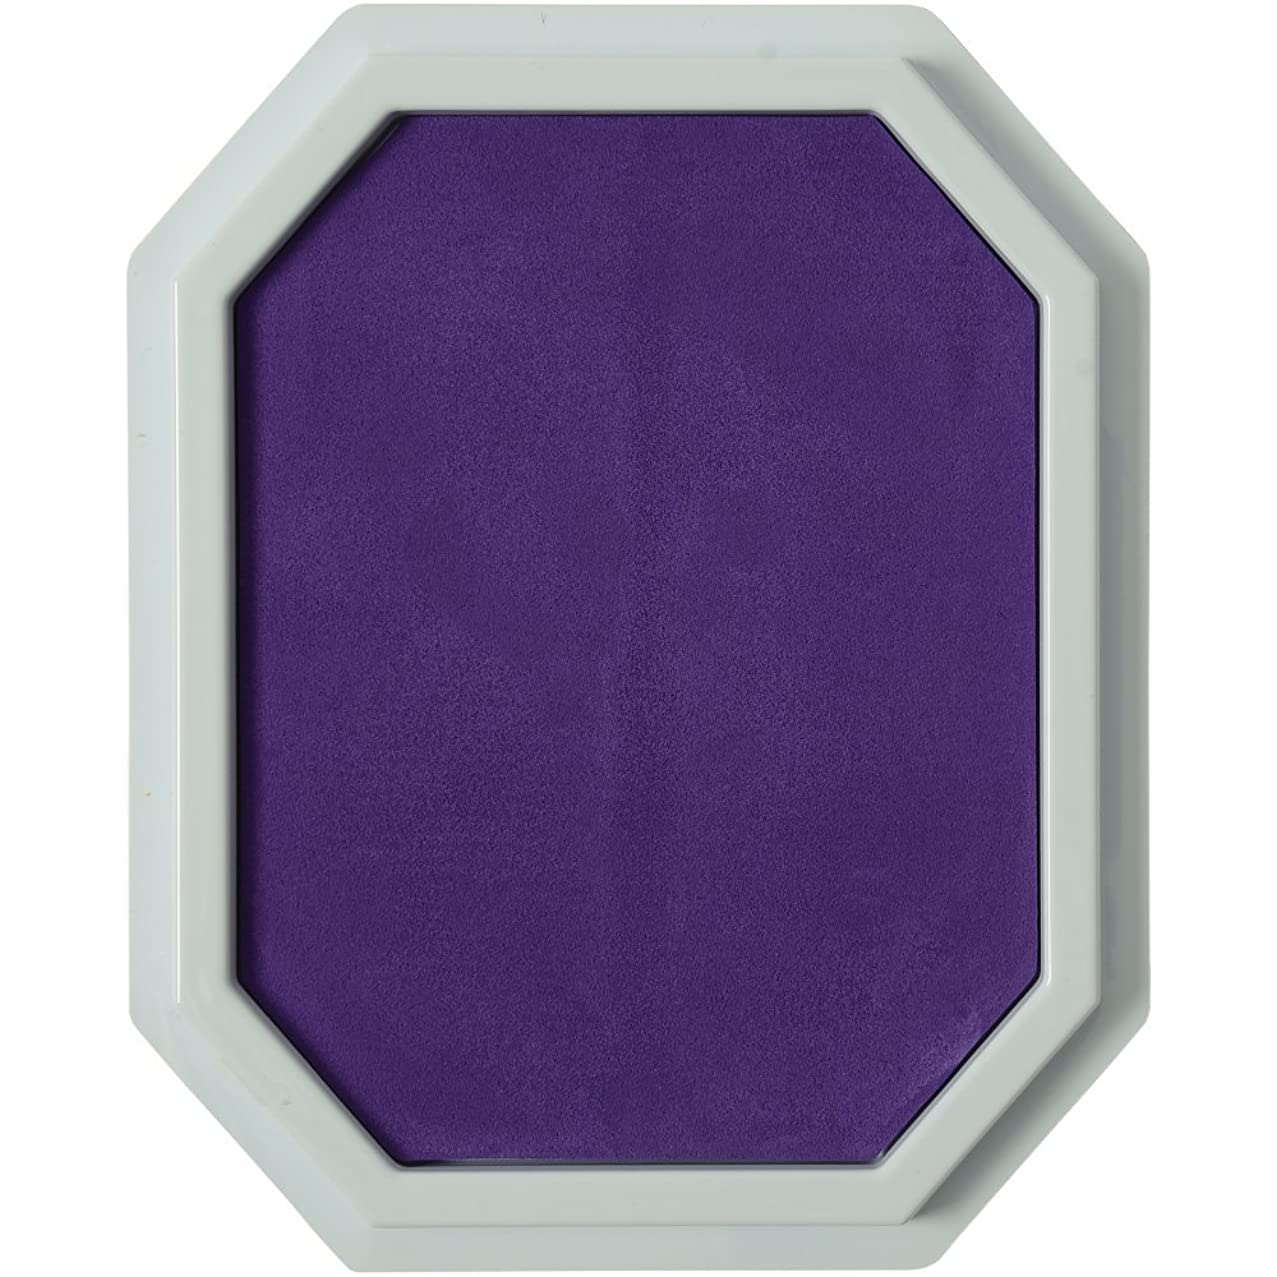 Constructive Playthings Purple Colored Ink Large Washable Stamp Pad Kid Set for Rubber Stamps